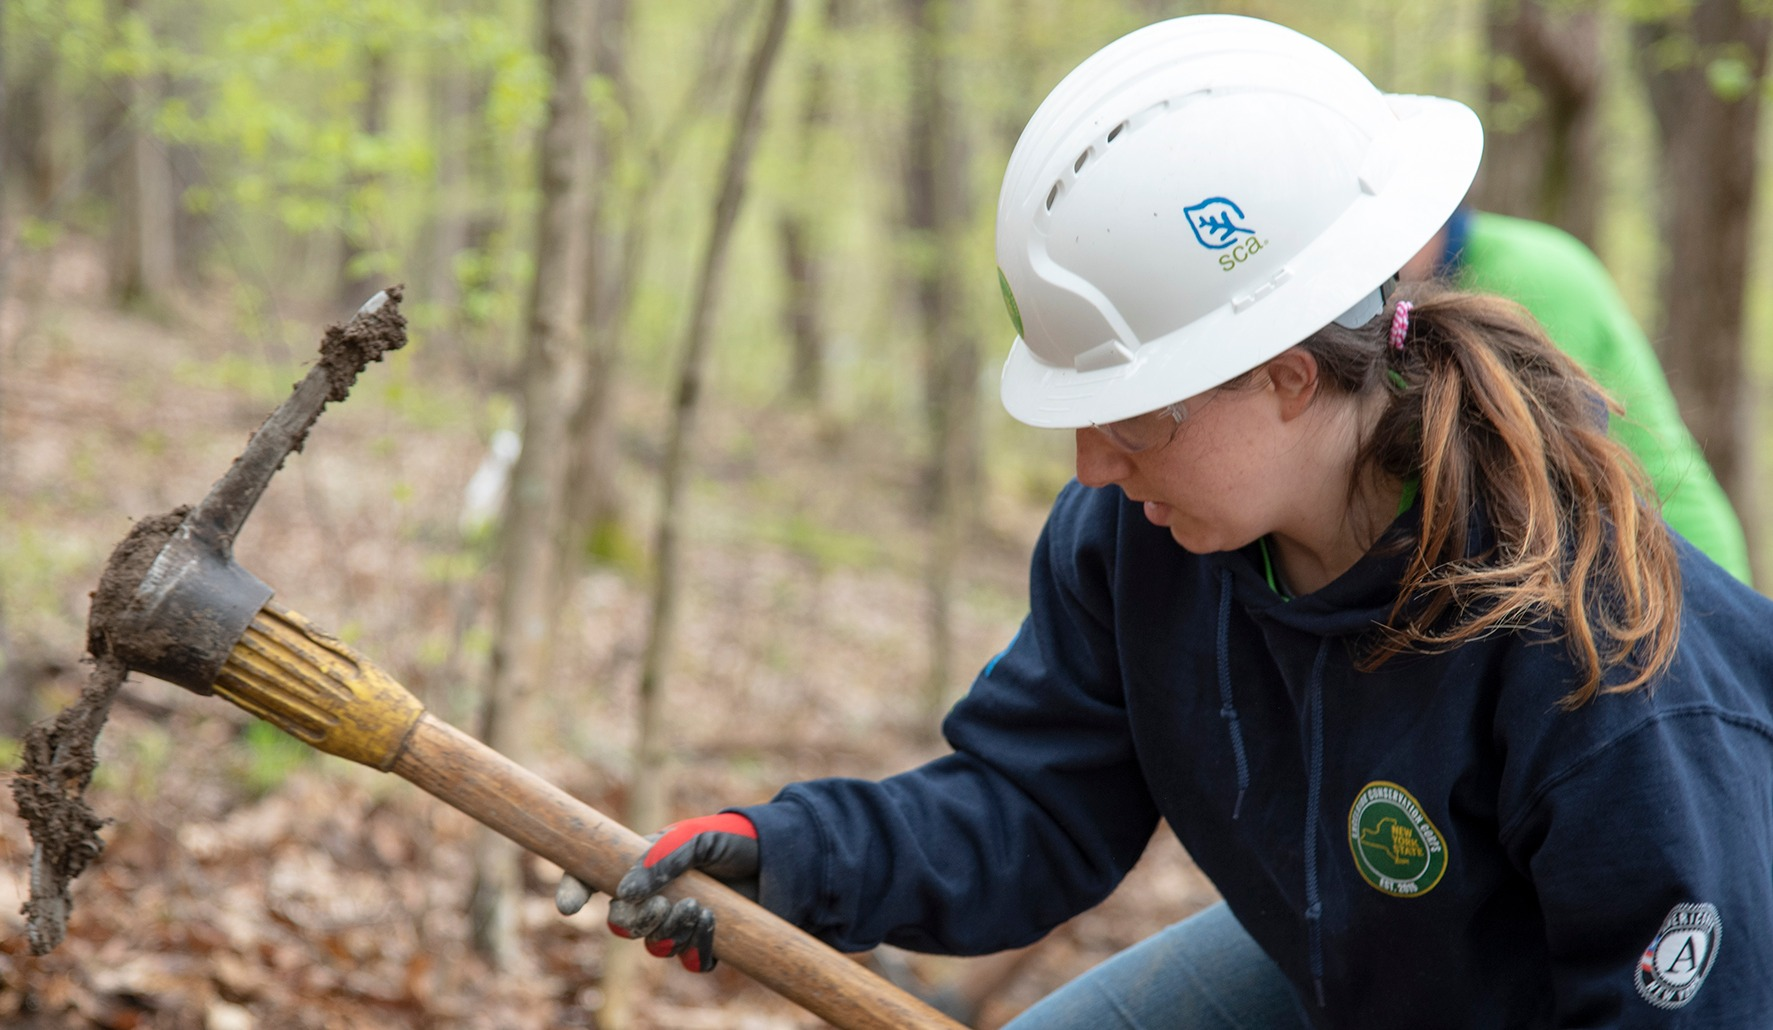 Tar River Land Conservancy (TRLC) Stewardship Internship 2020 (Paid position)